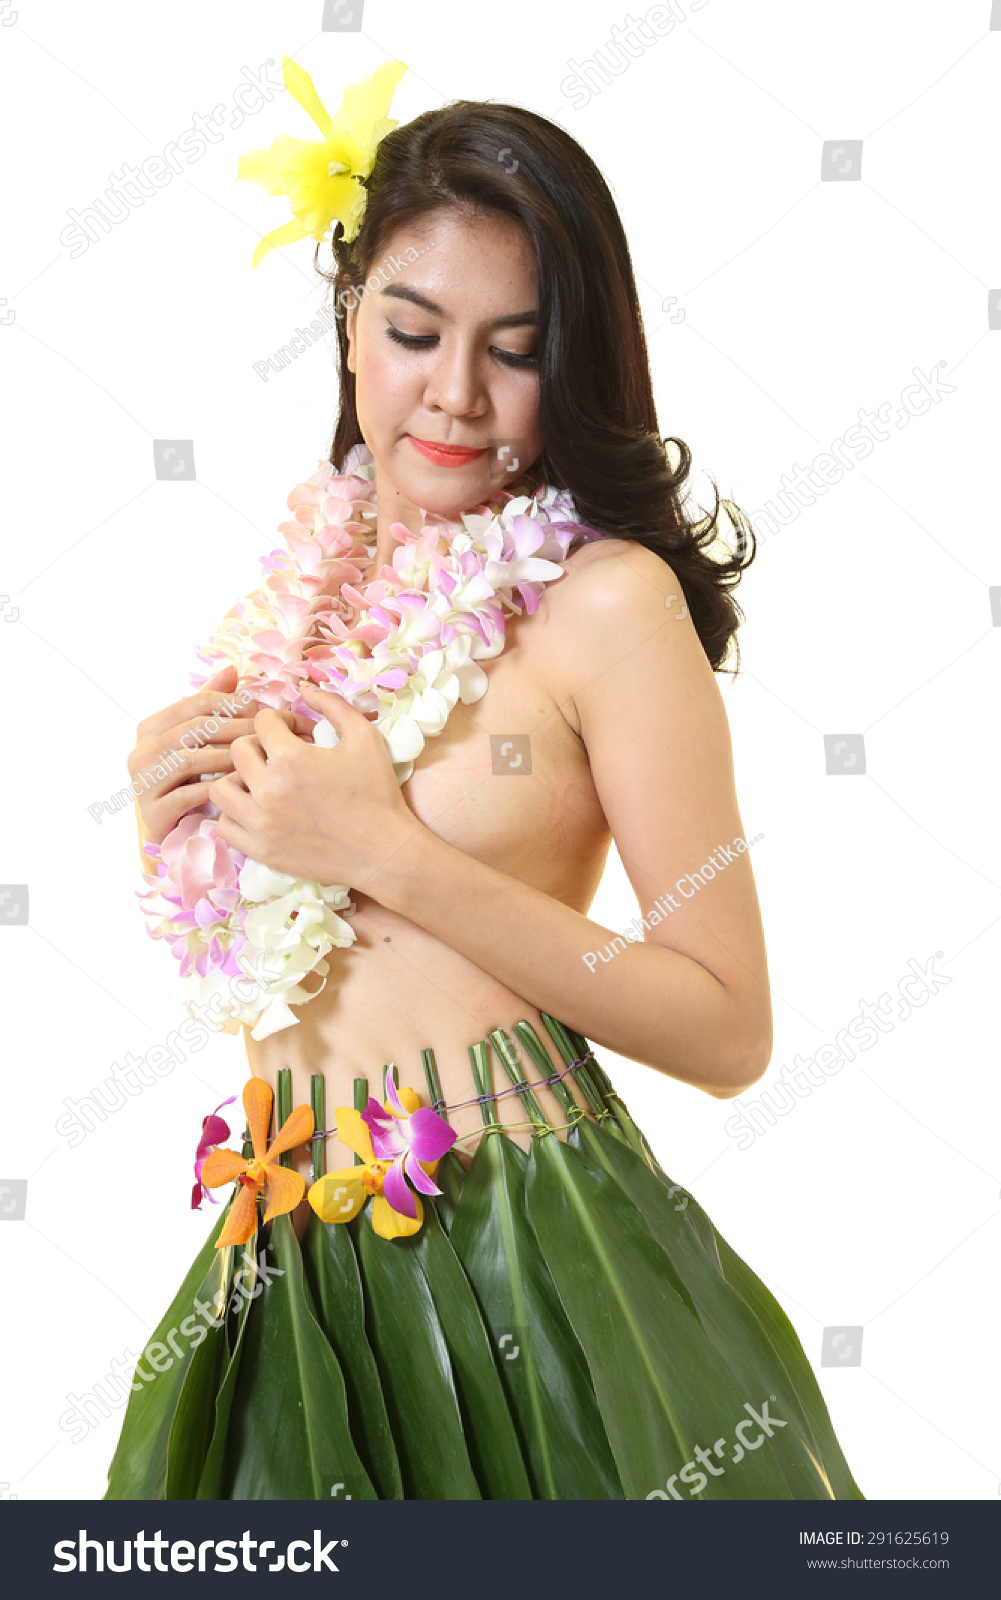 Beautiful woman dress hawaiian style flower stock photo 291625619 beautiful woman dress in hawaiian style with flower lei garland of white orchids on white background izmirmasajfo